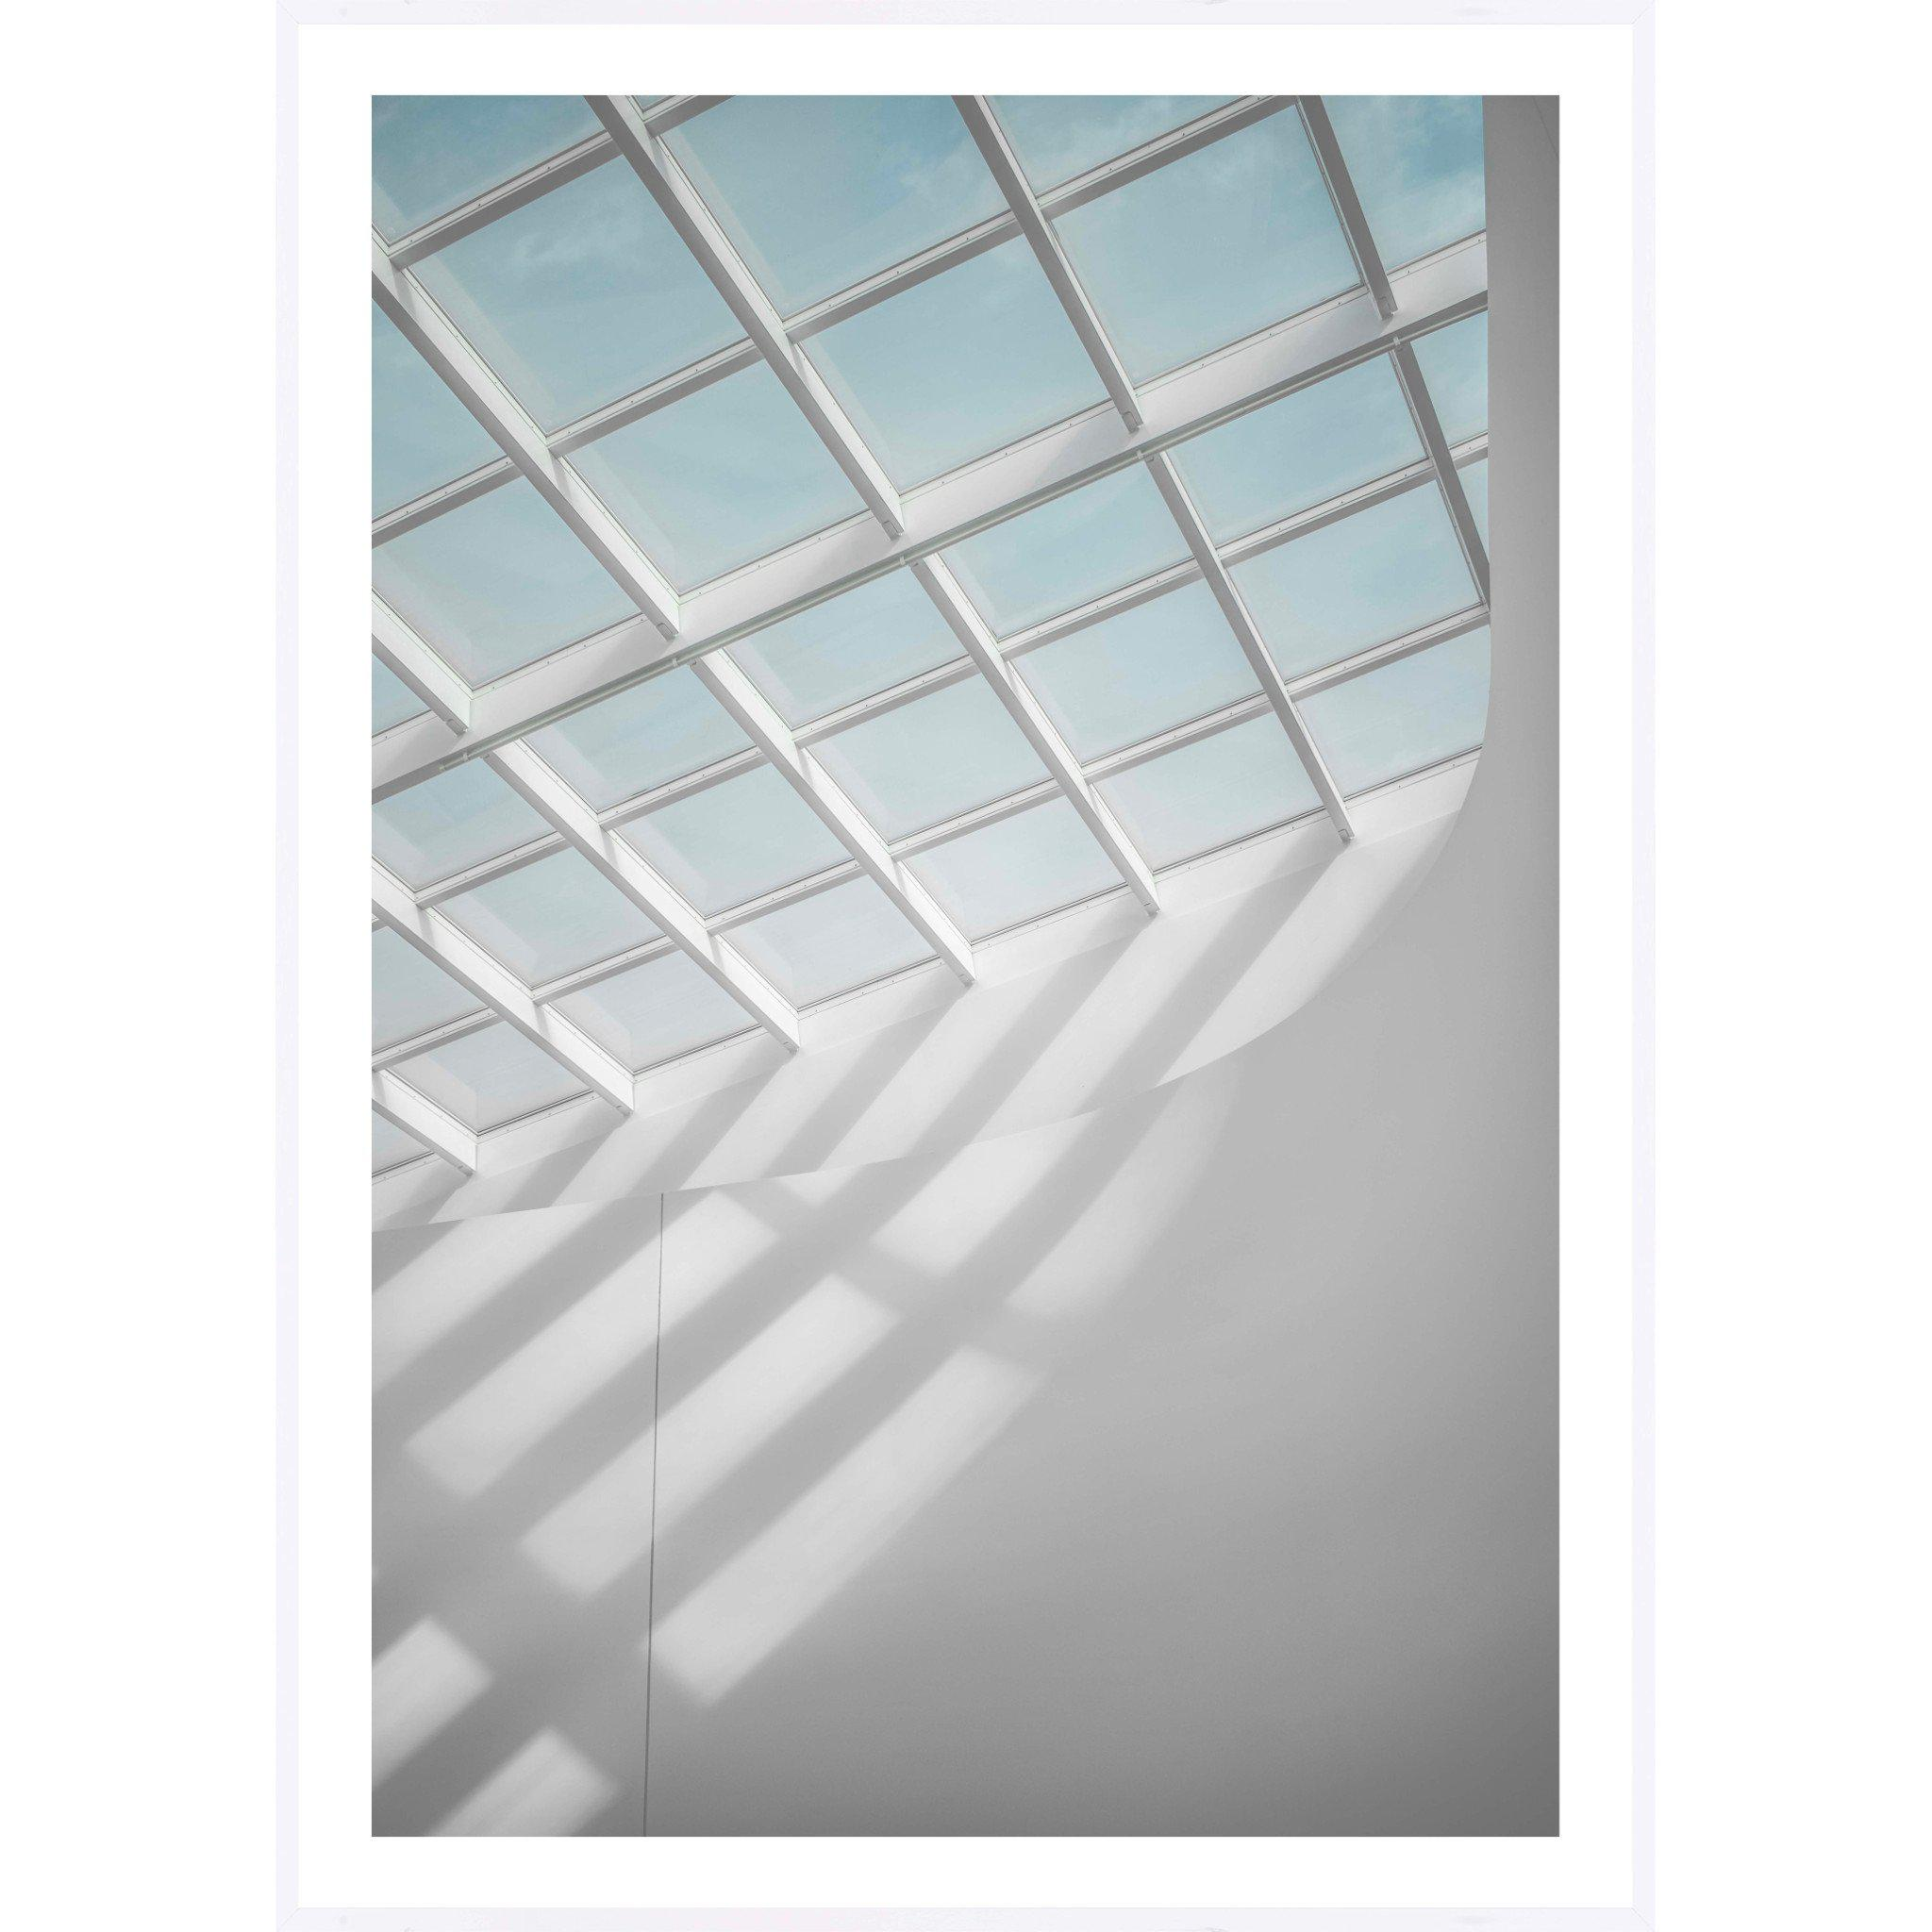 Glass Ceilings - Art Print, Portrait - mykodu